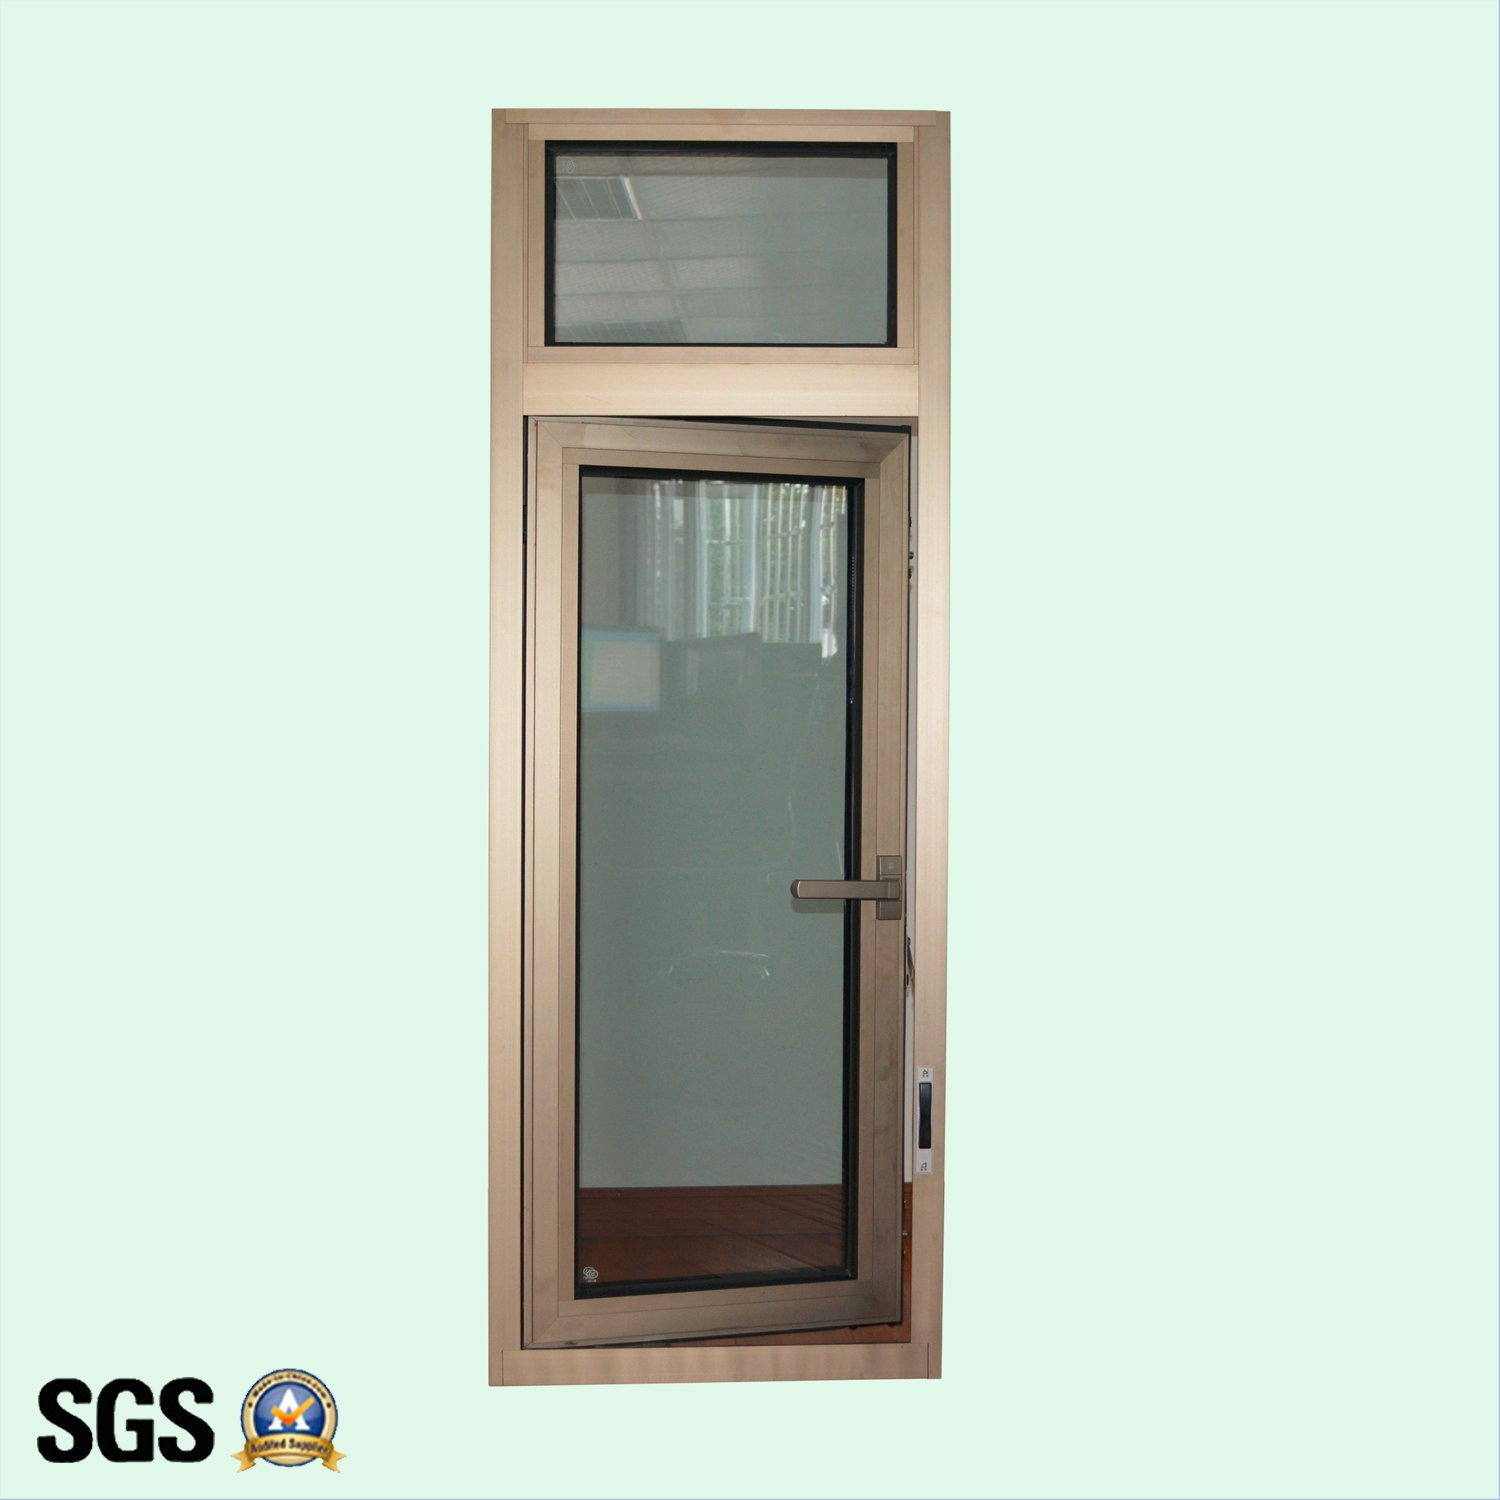 High Quality Anodized Aluminum Profile Casement Window with Multi Point Lock K03005